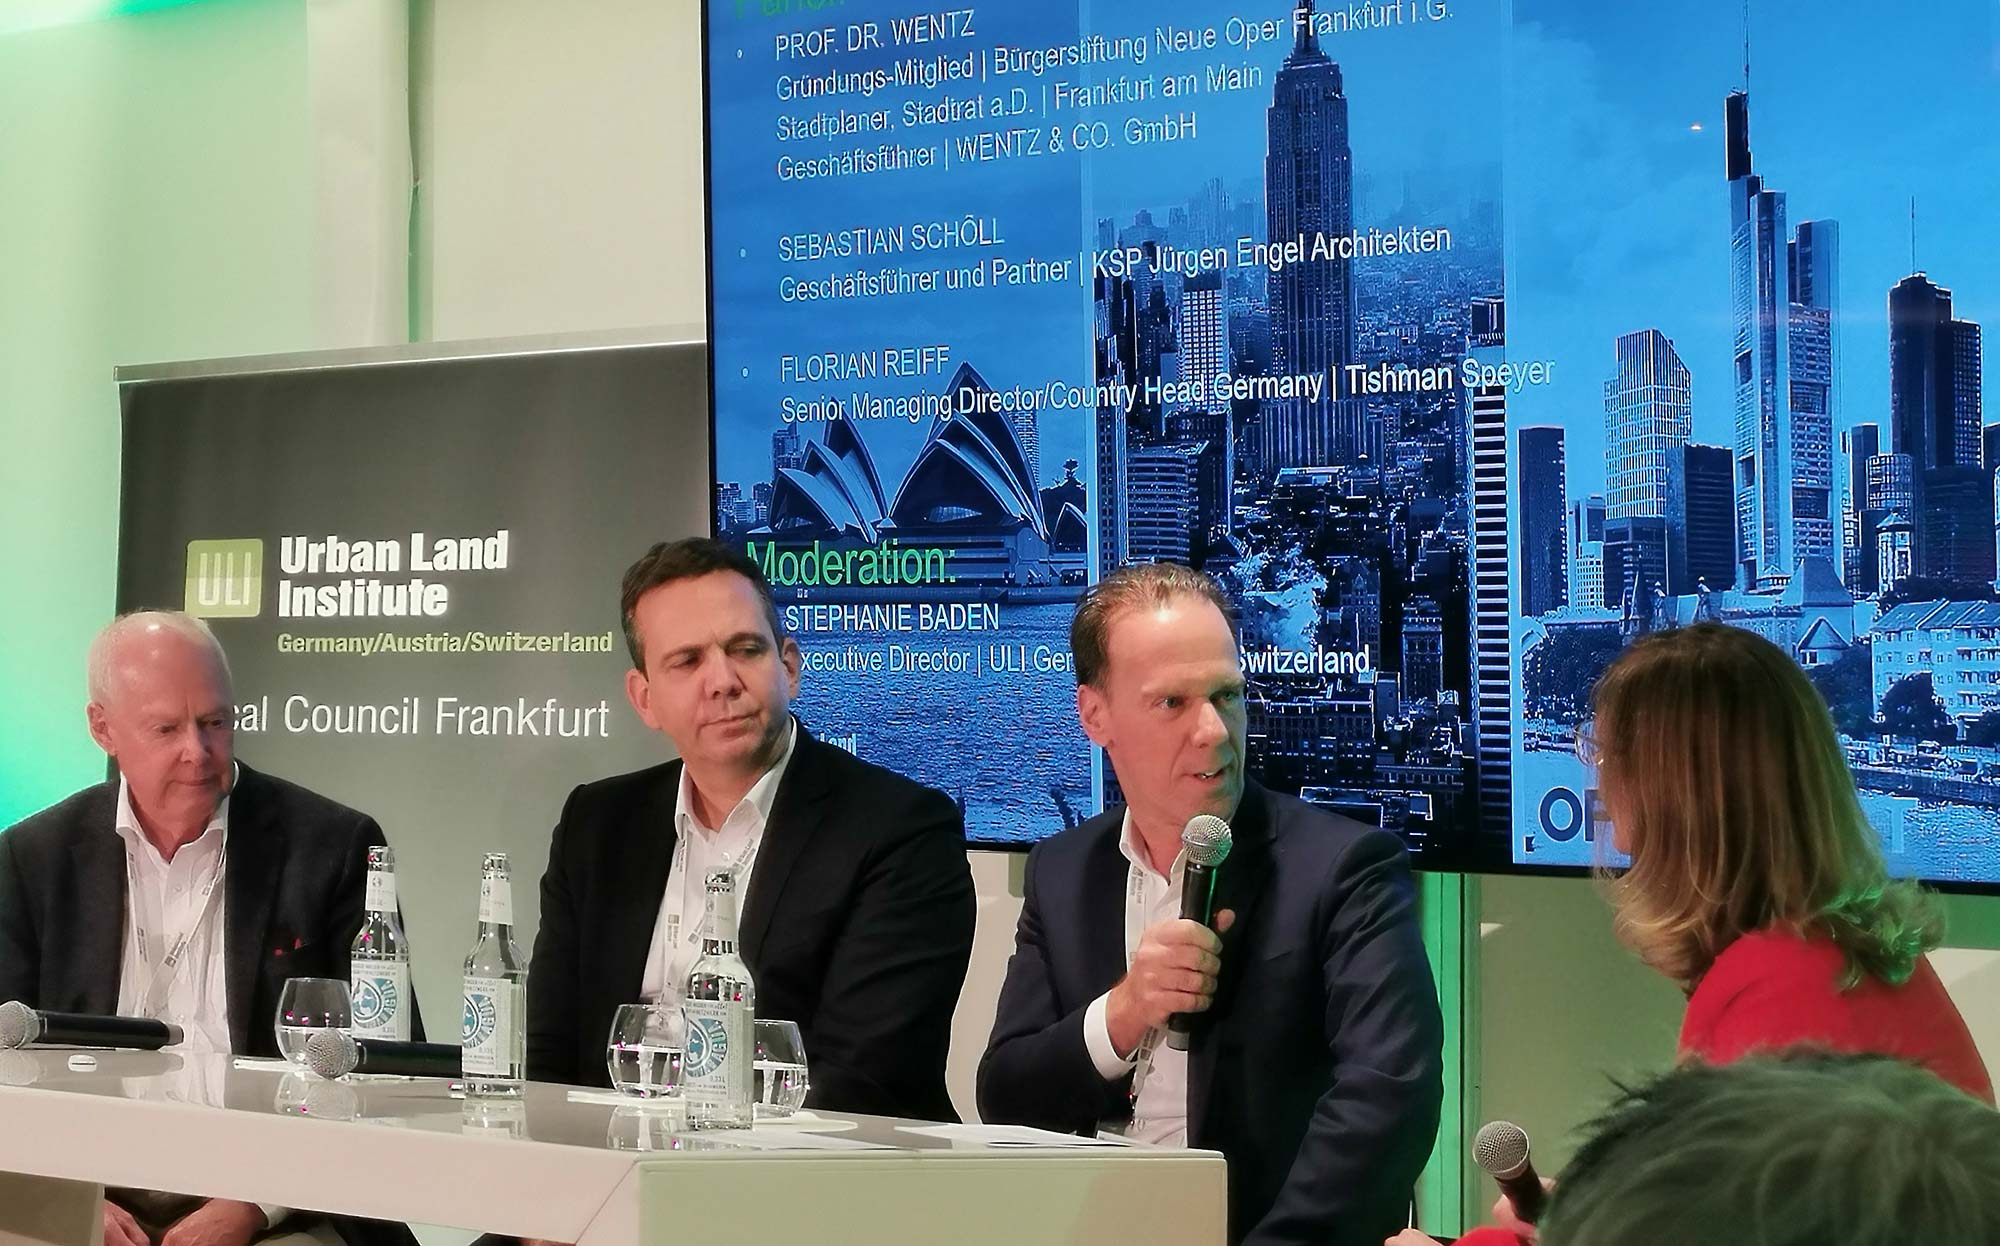 Immobilien Diskussion 2019 - Landmark Buildings - ULI - Urban Land Institute - Martin Wentz - Sebastian Schöll - Florian Reiff